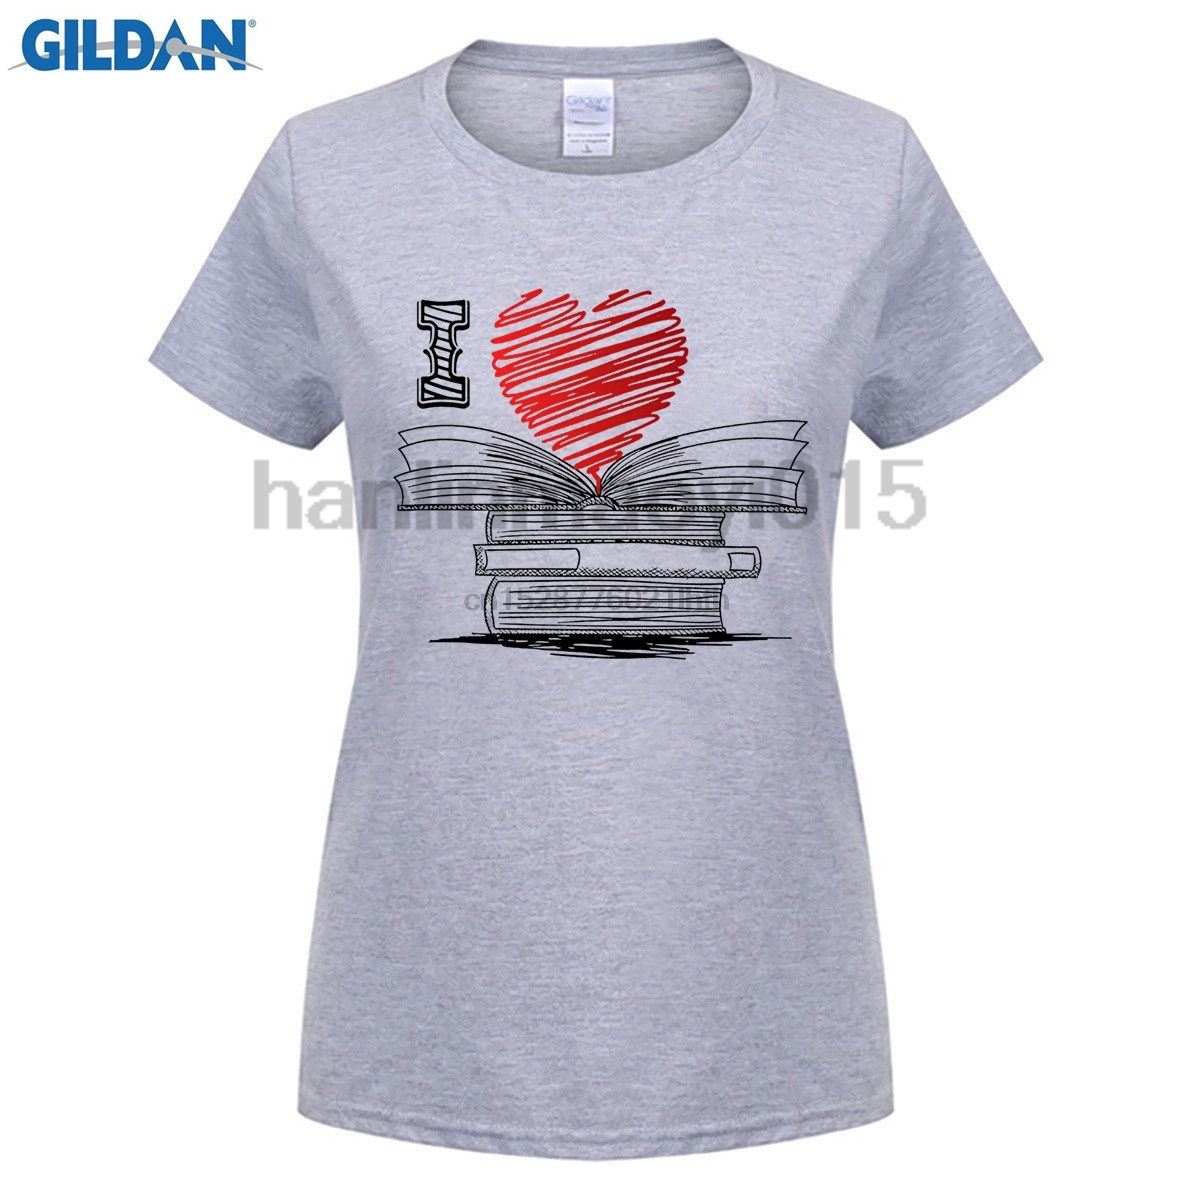 100% Cotton O-neck printed T-shirt I Love Books T Shirt For Readers Writers Librarians for men(China)